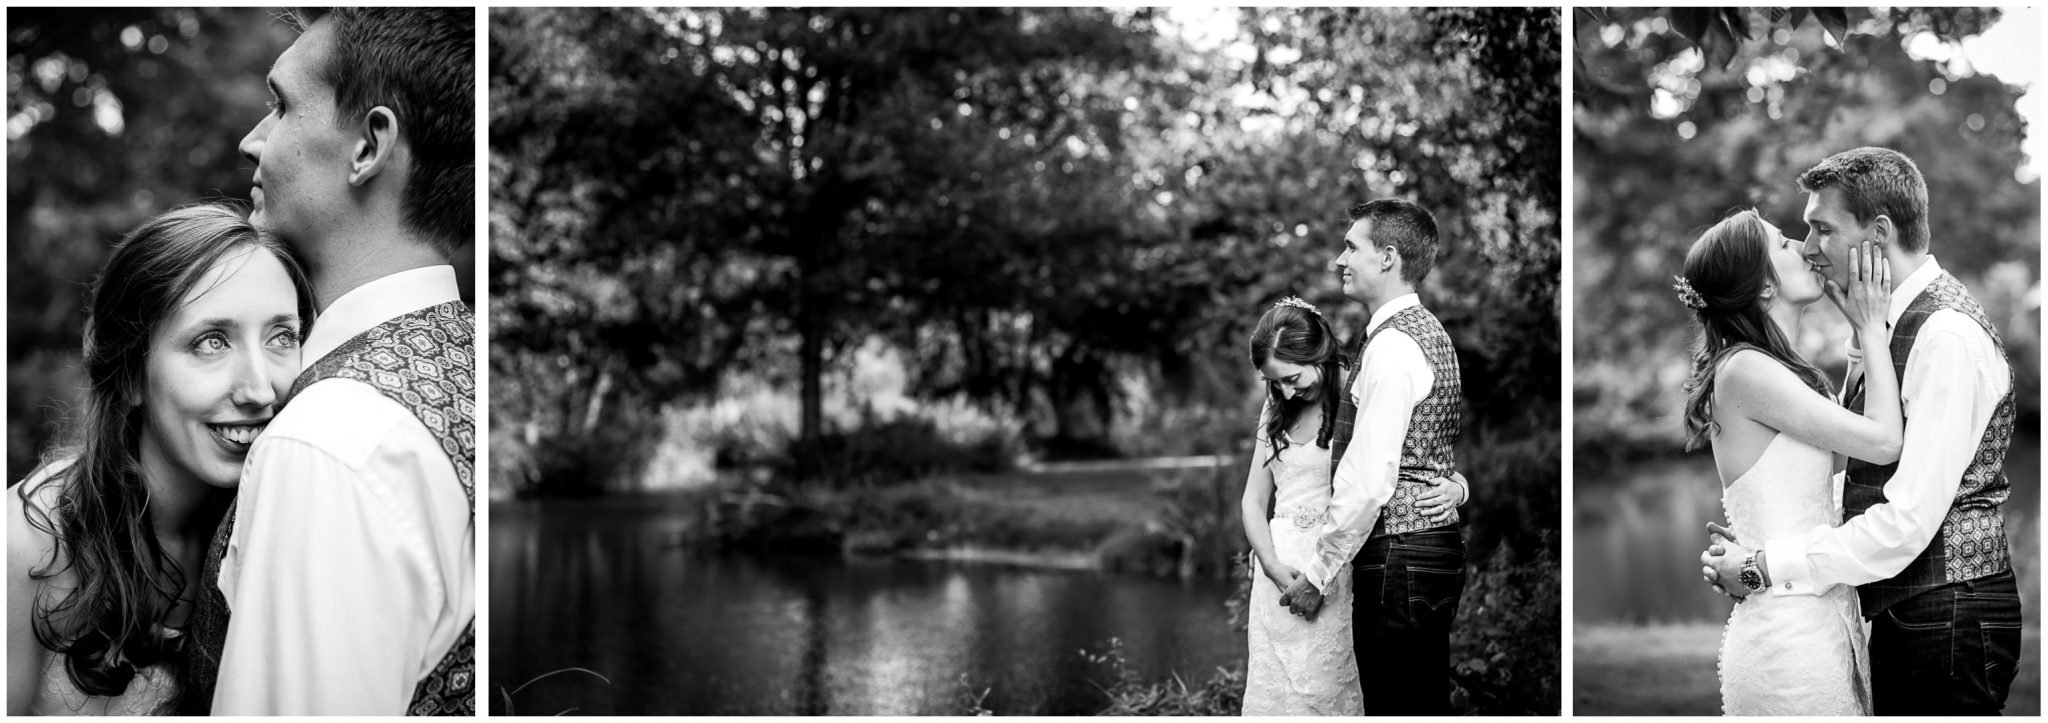 Timsbury Manor Festival Wedding couple portraits in black and white